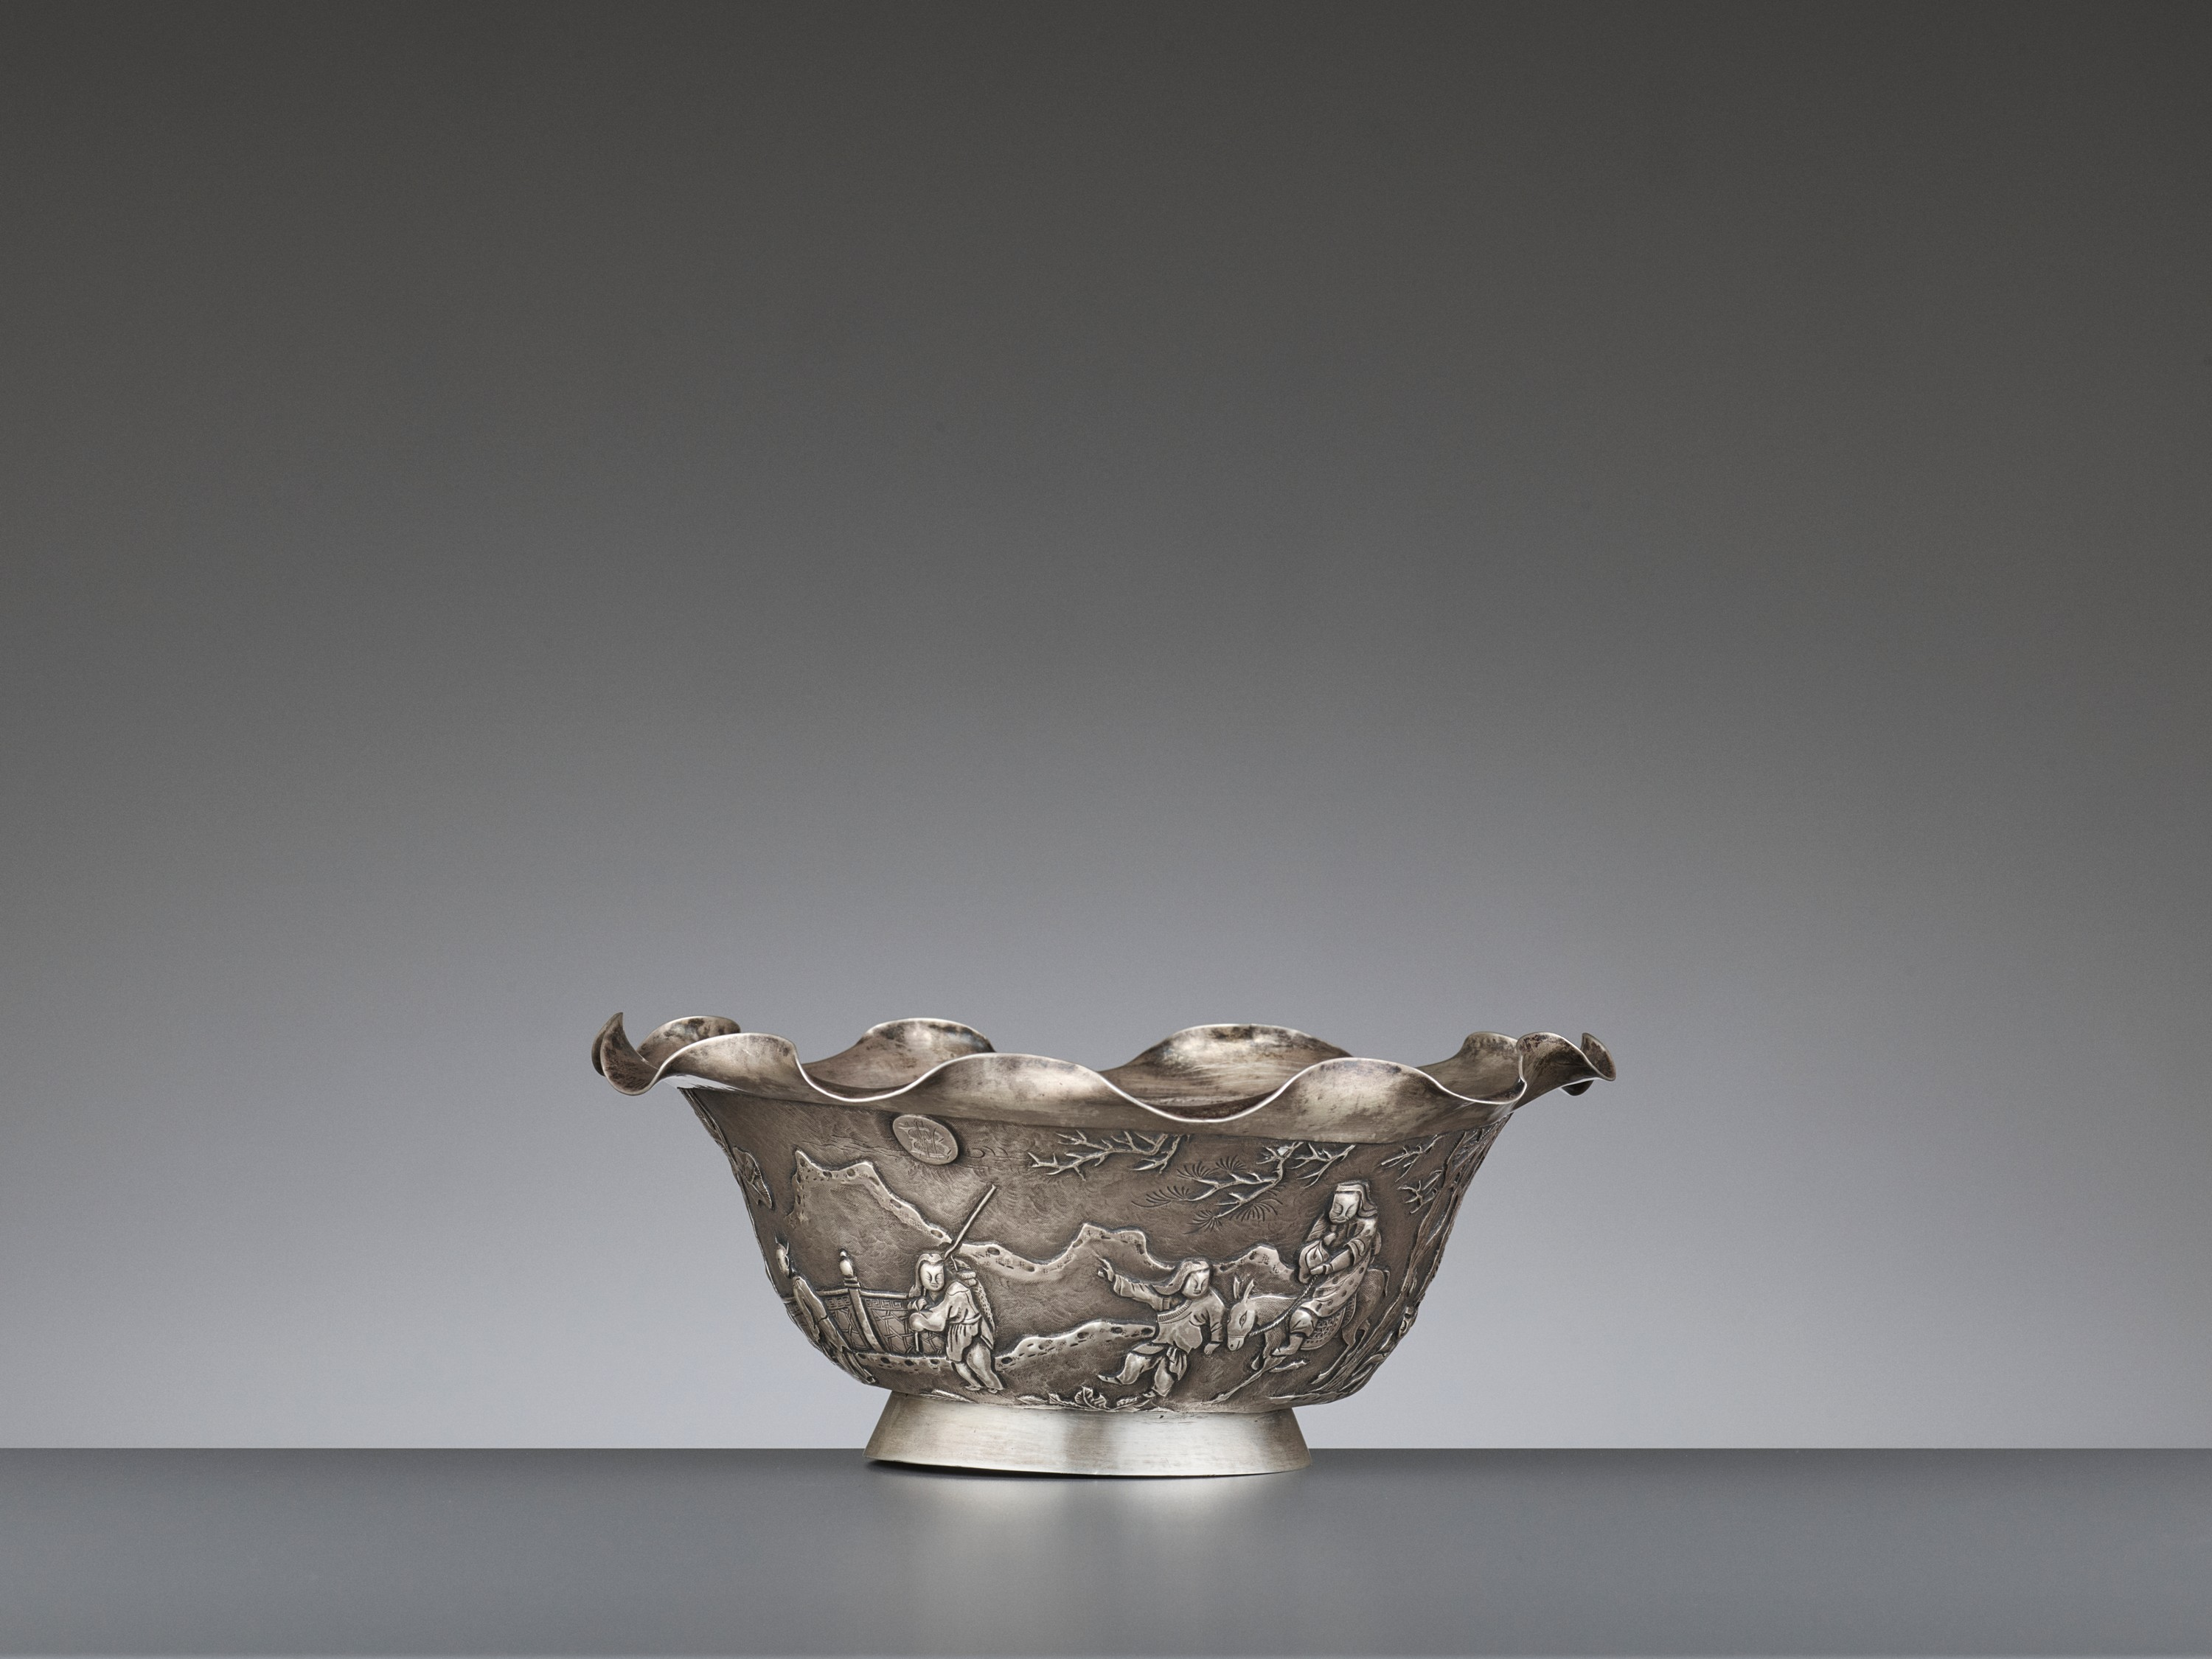 A SILVER REPOUSSE 'WEIQI PLAYERS' BOWL BY KWONG MAN SHING - Image 3 of 9